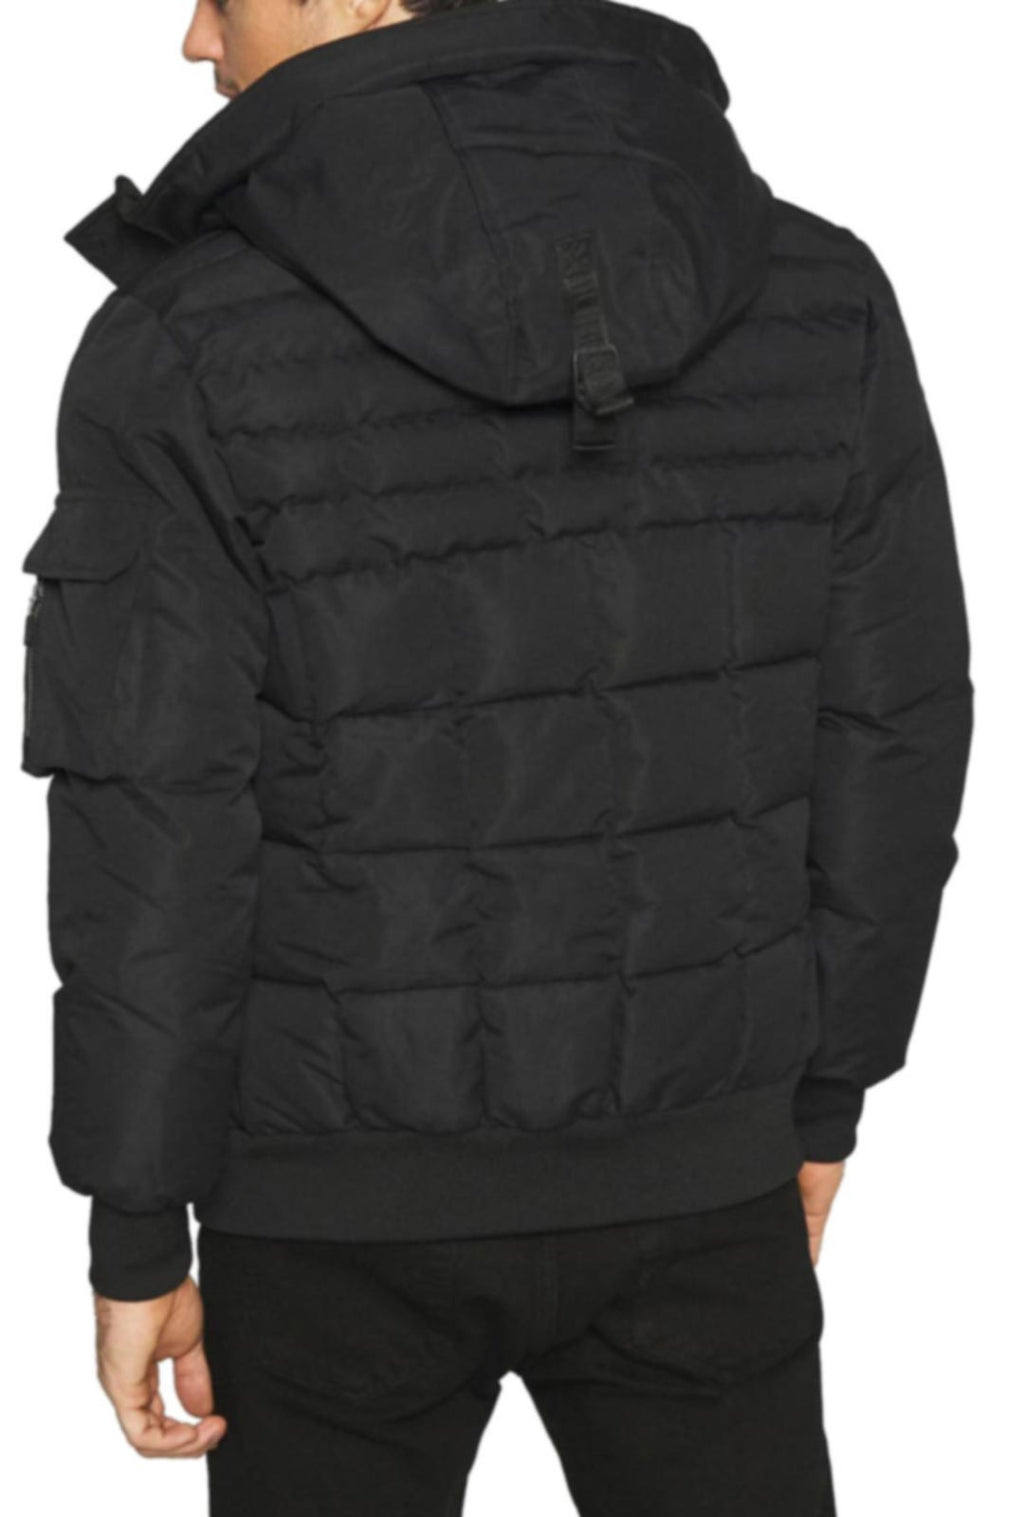 Kings Will Dream Milford Puffa Bomber Jacket Black